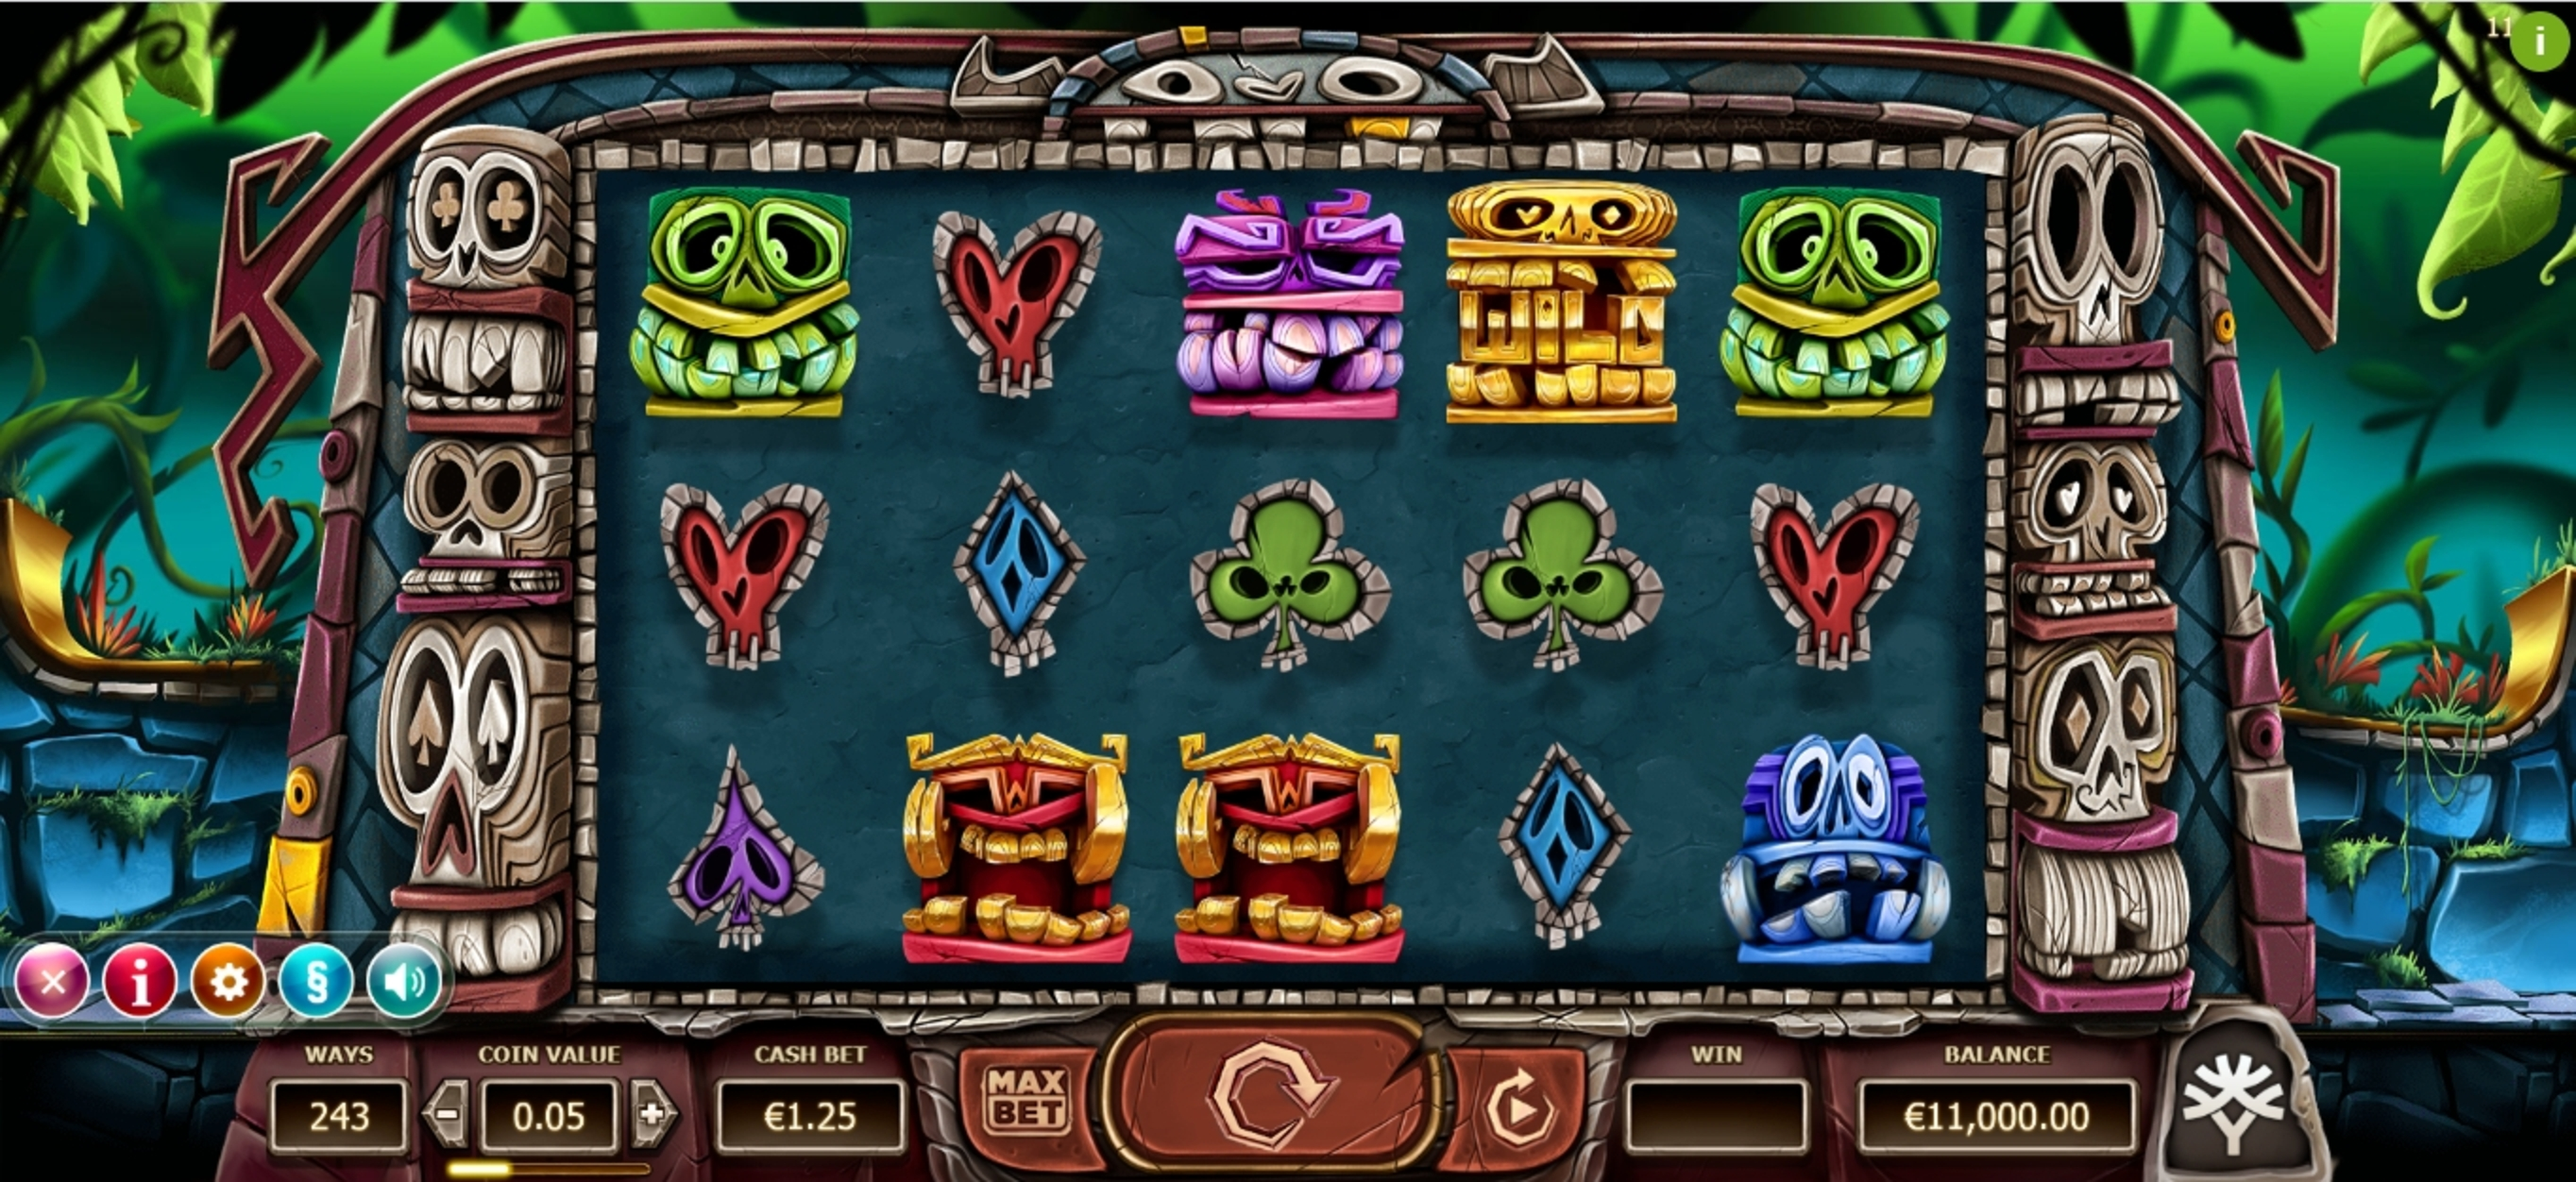 Reels in Big Blox Slot Game by Yggdrasil